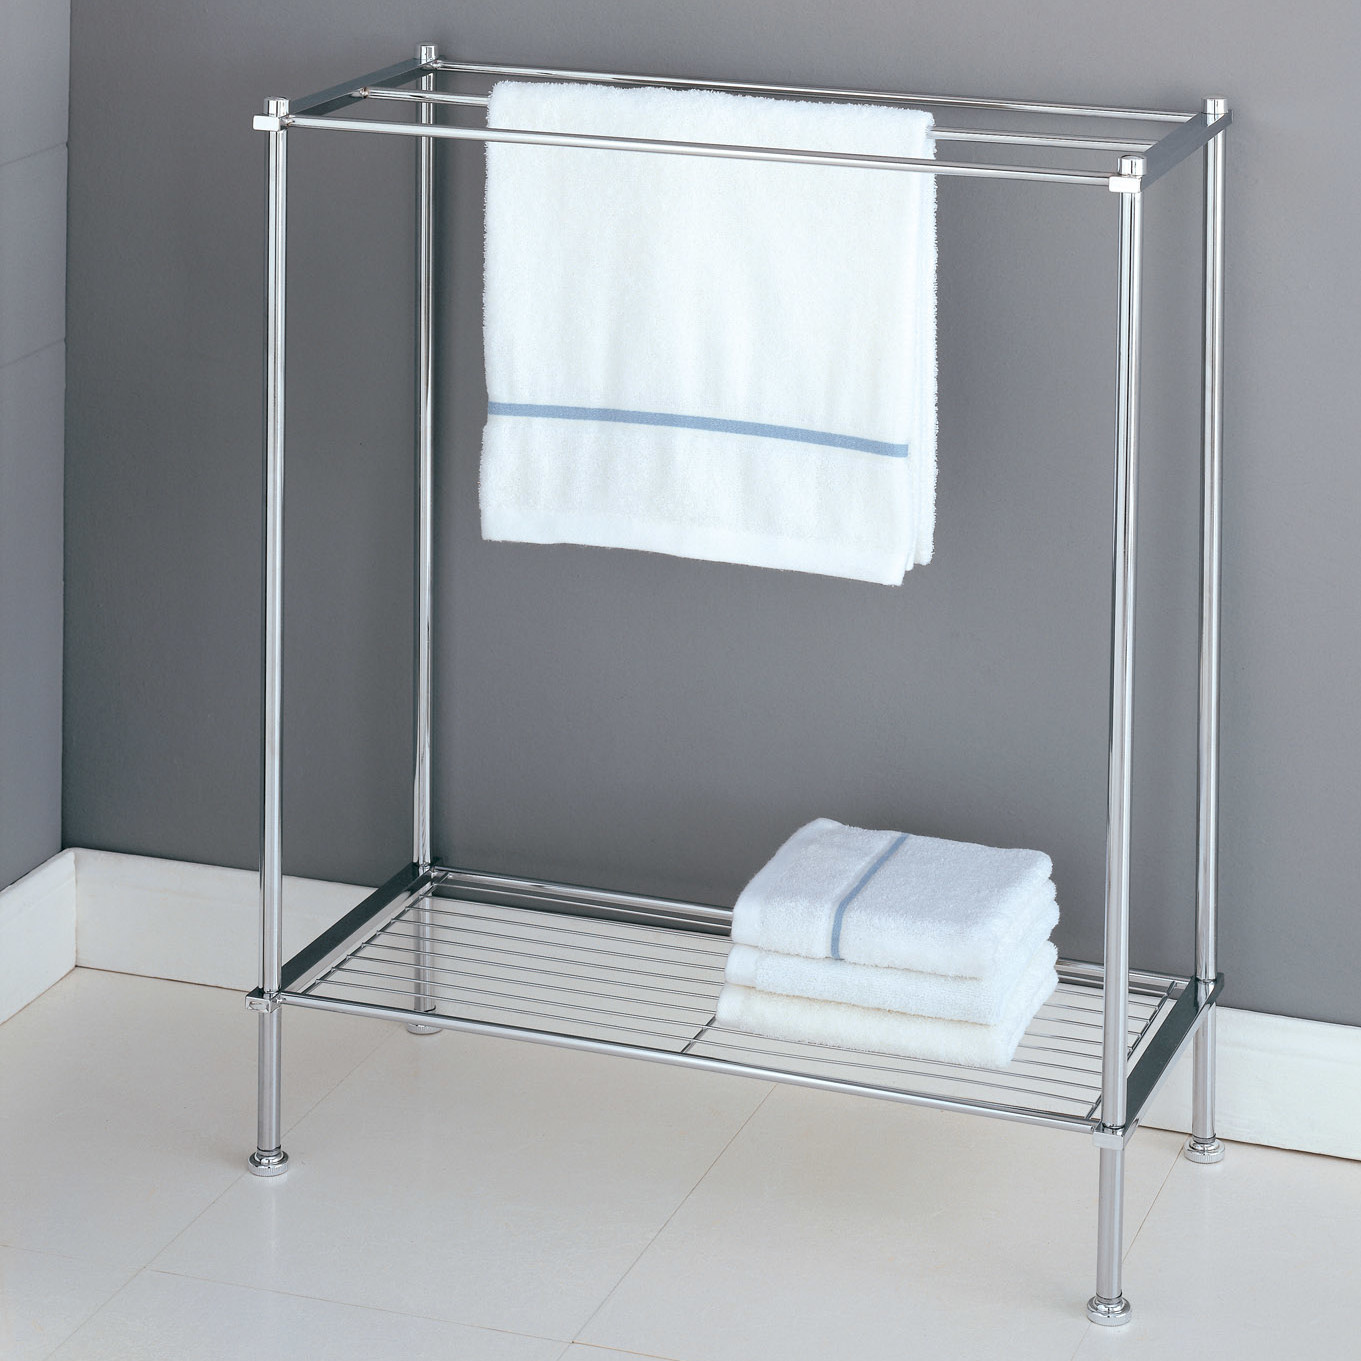 Stylish free standing towel racks for outstanding bathroom for Bathroom towel racks